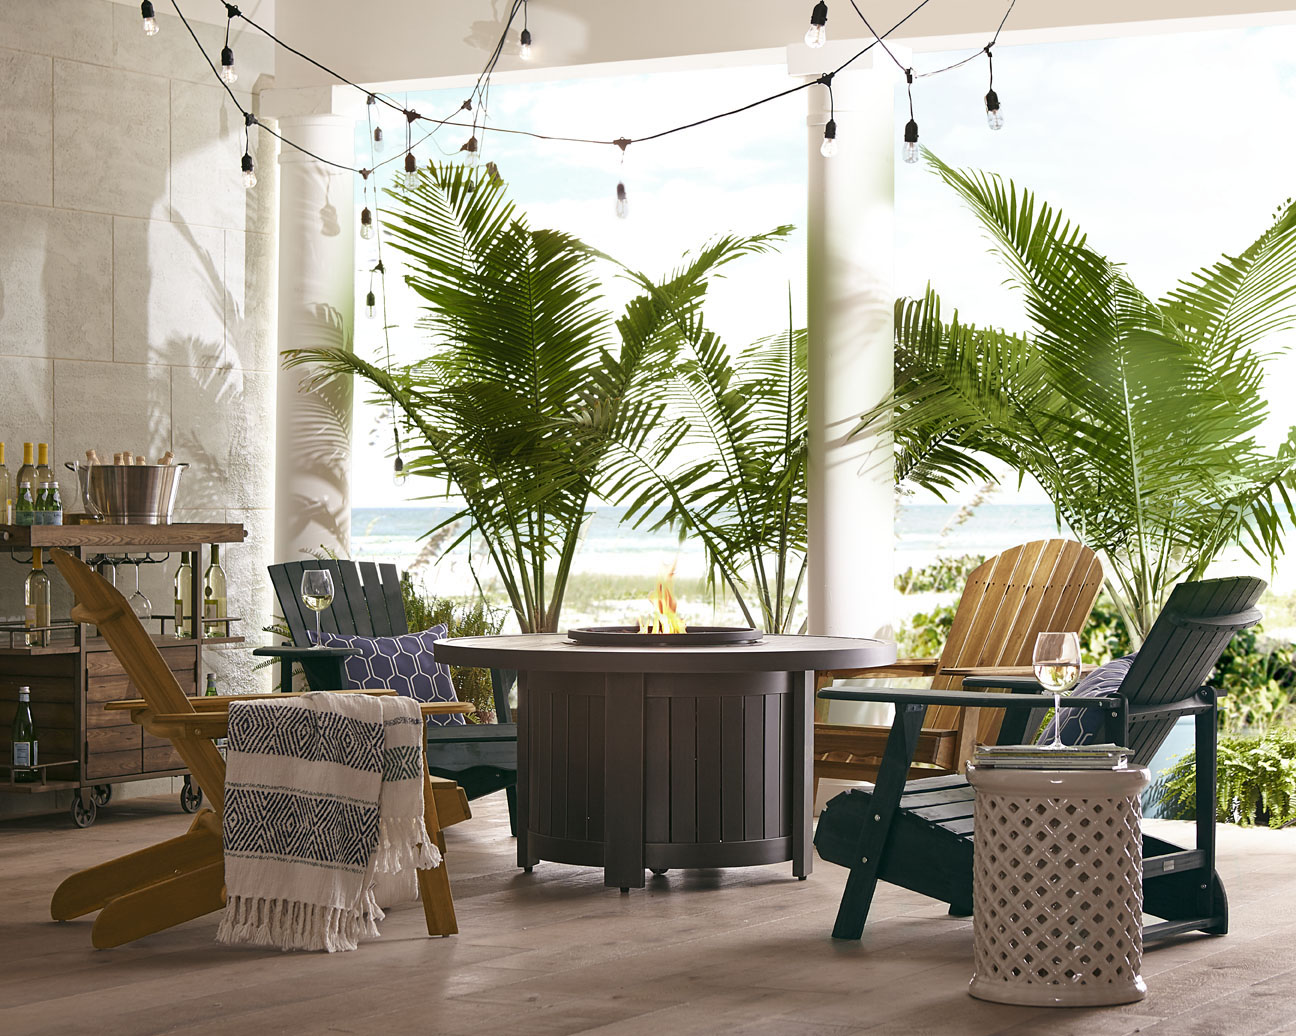 outdoor-patio-fire-pit-chairs-ferns